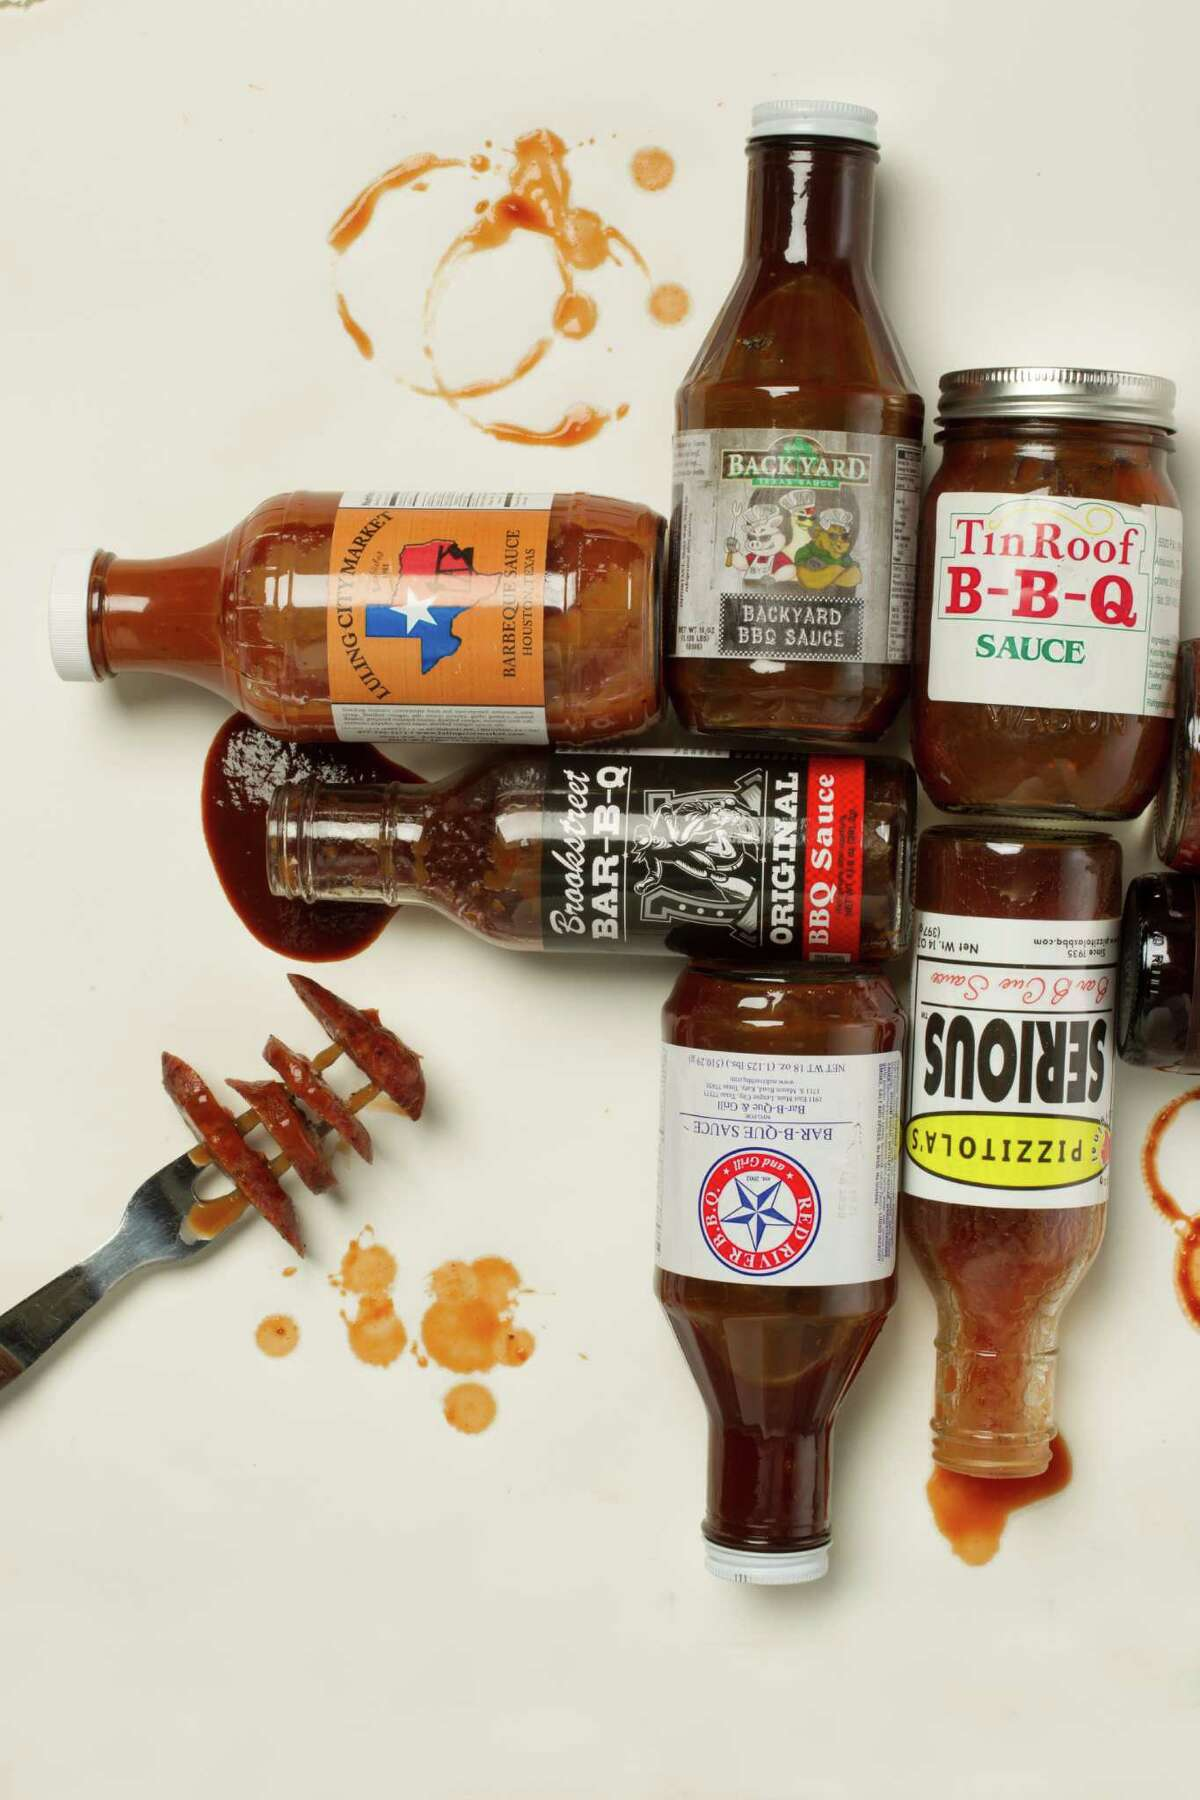 With Memorial Day just around the corner, Texans will be firing up their grills and tweaking their sauces for the start of the summer barbecue season. See what our tasters had to say about these sauces. Catch up on your Texas BBQ sauce history at houstonchronicle.com. Tell us: Does BBQ need sauce?